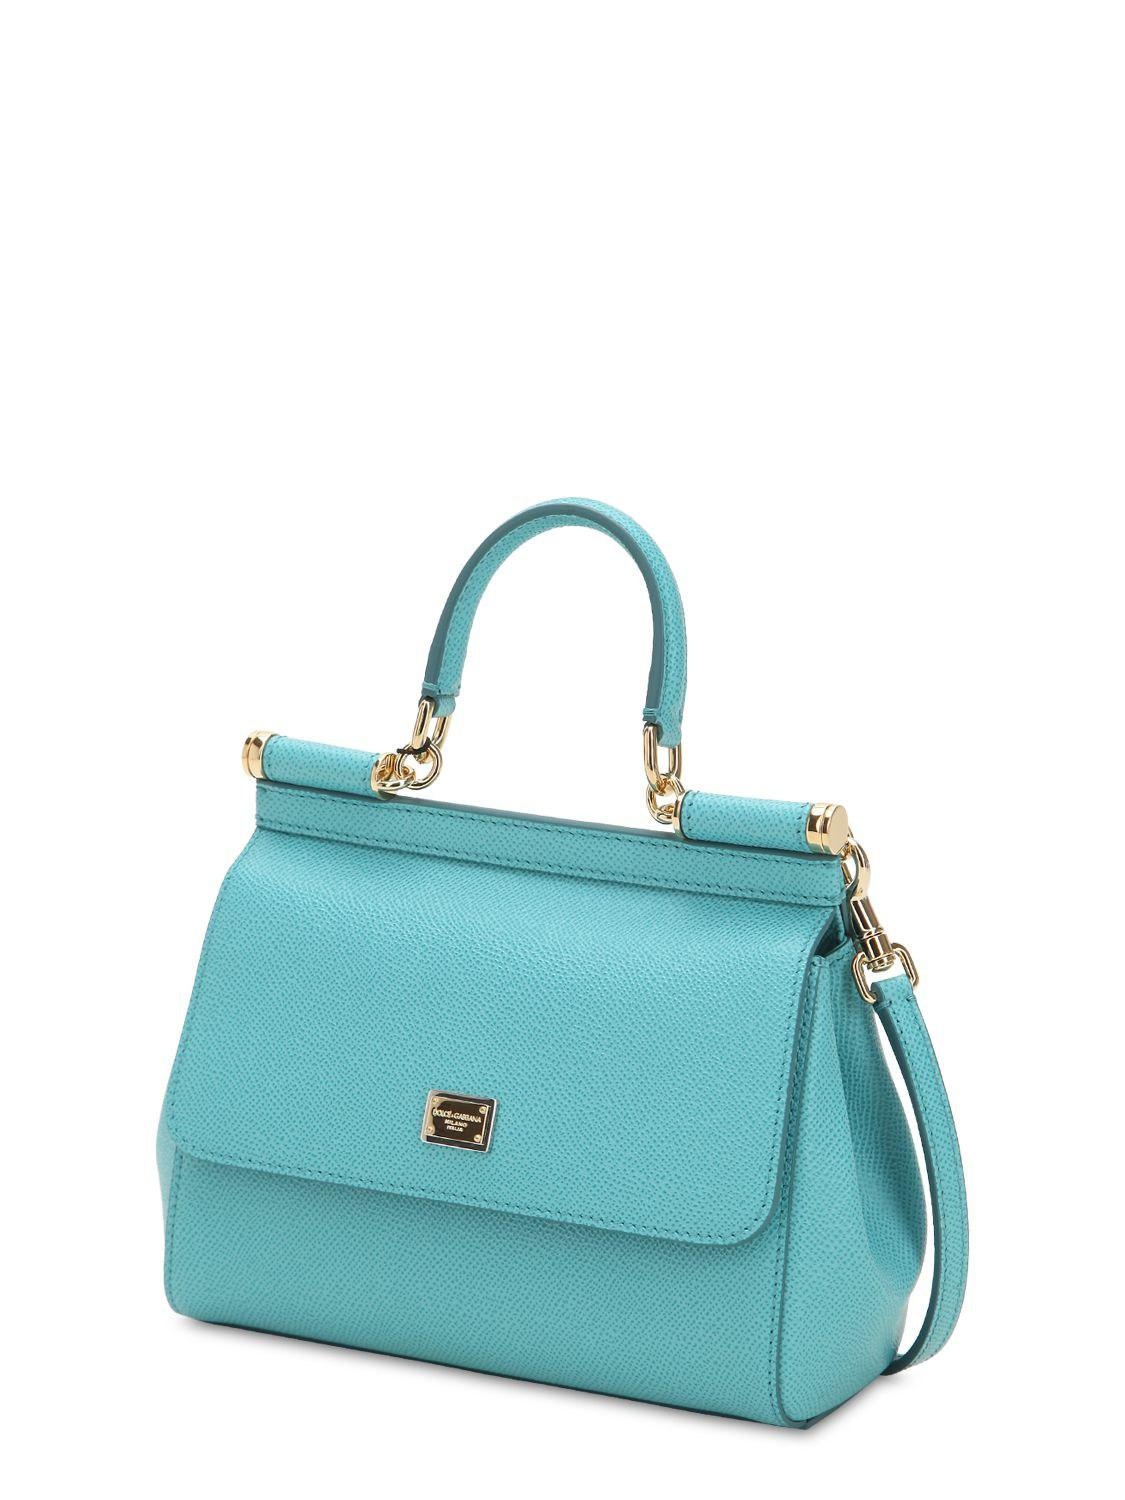 Dolce   Gabbana - Blue Small Sicily Dauphine Leather Bag - Lyst. View  fullscreen 028e9863ad